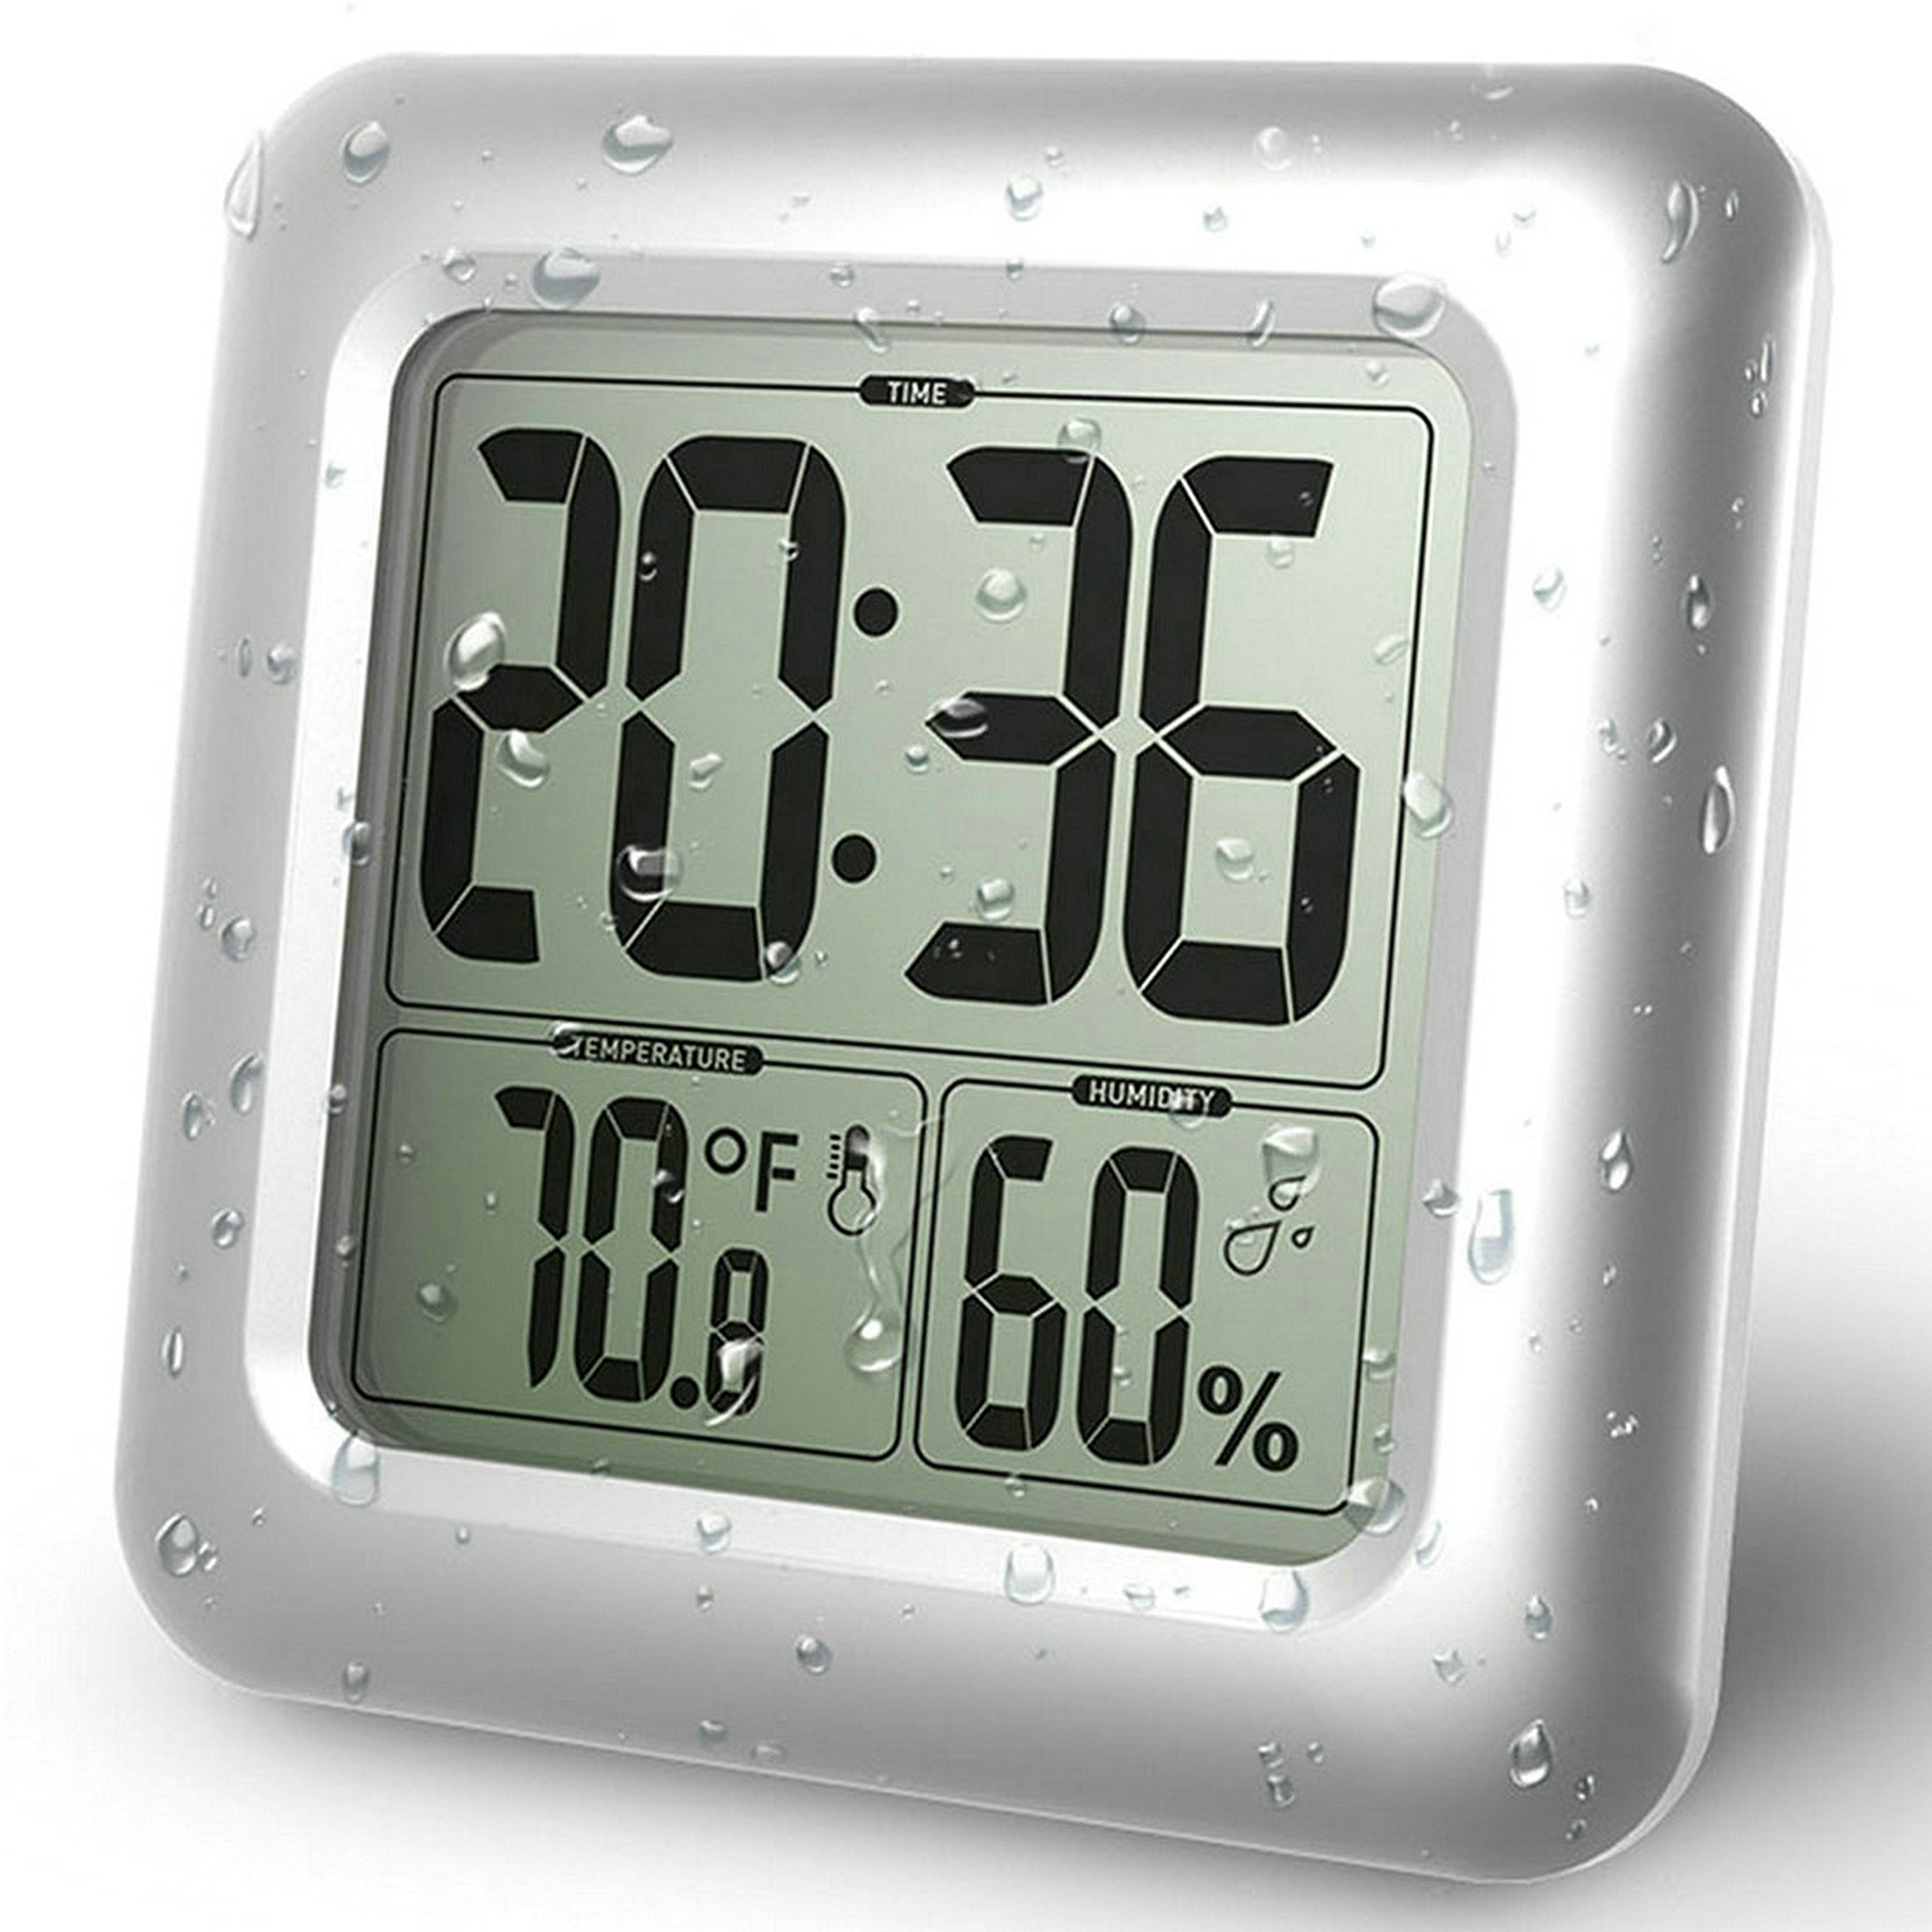 GuDoQi Waterproof Bathroom Clock LCD Digital Wall Mirror Suction Cup Kitchen Temperature Humidity Sensor Time Watch Shower Clock